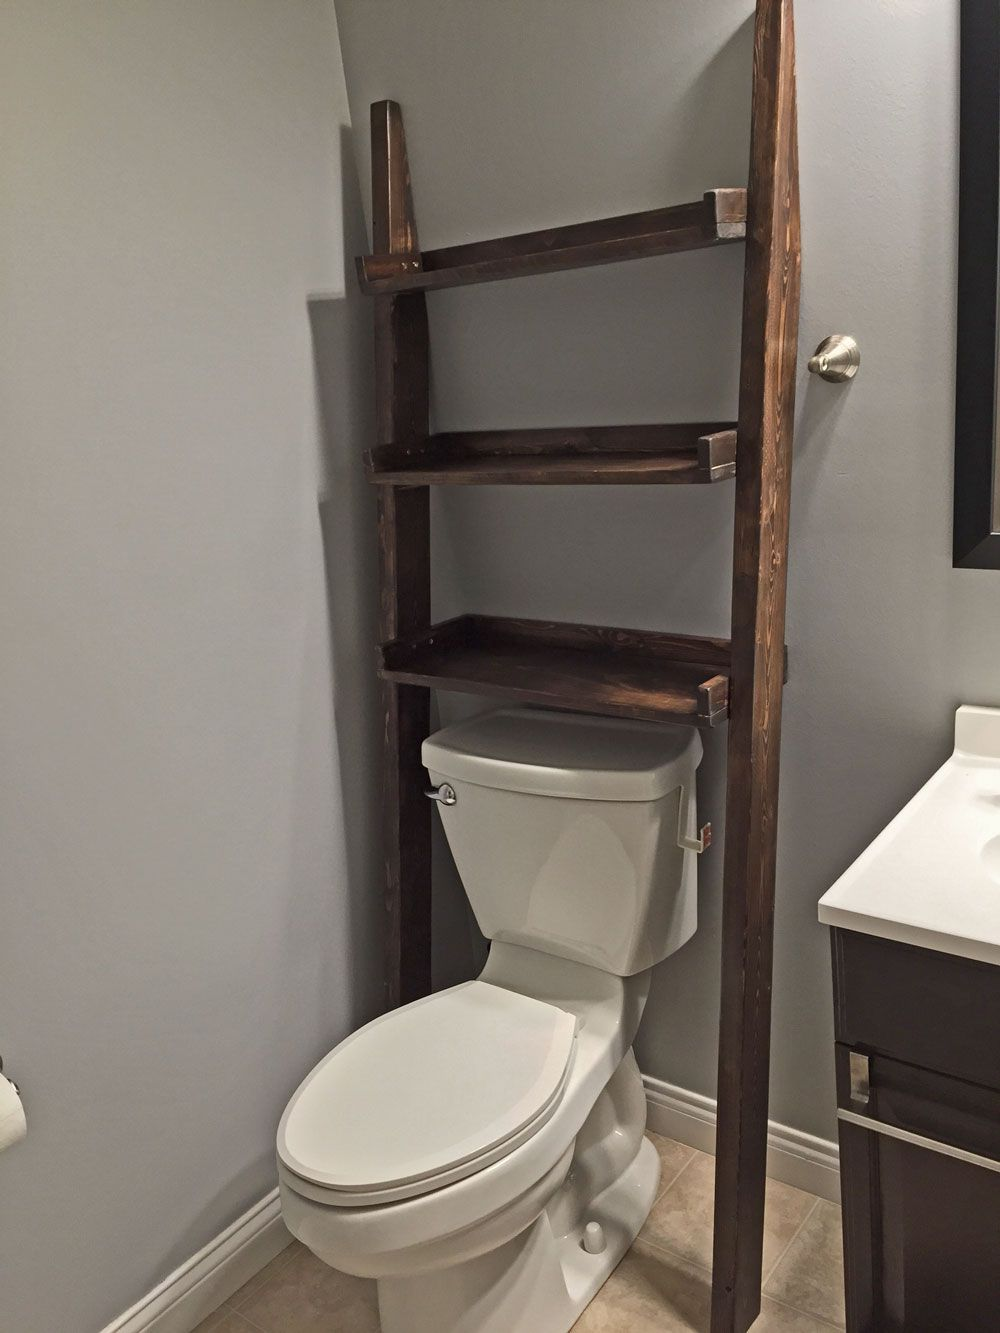 High Quality Leaning Bathroom Ladder Shelf | Do It Yourself Home Projects From Ana White